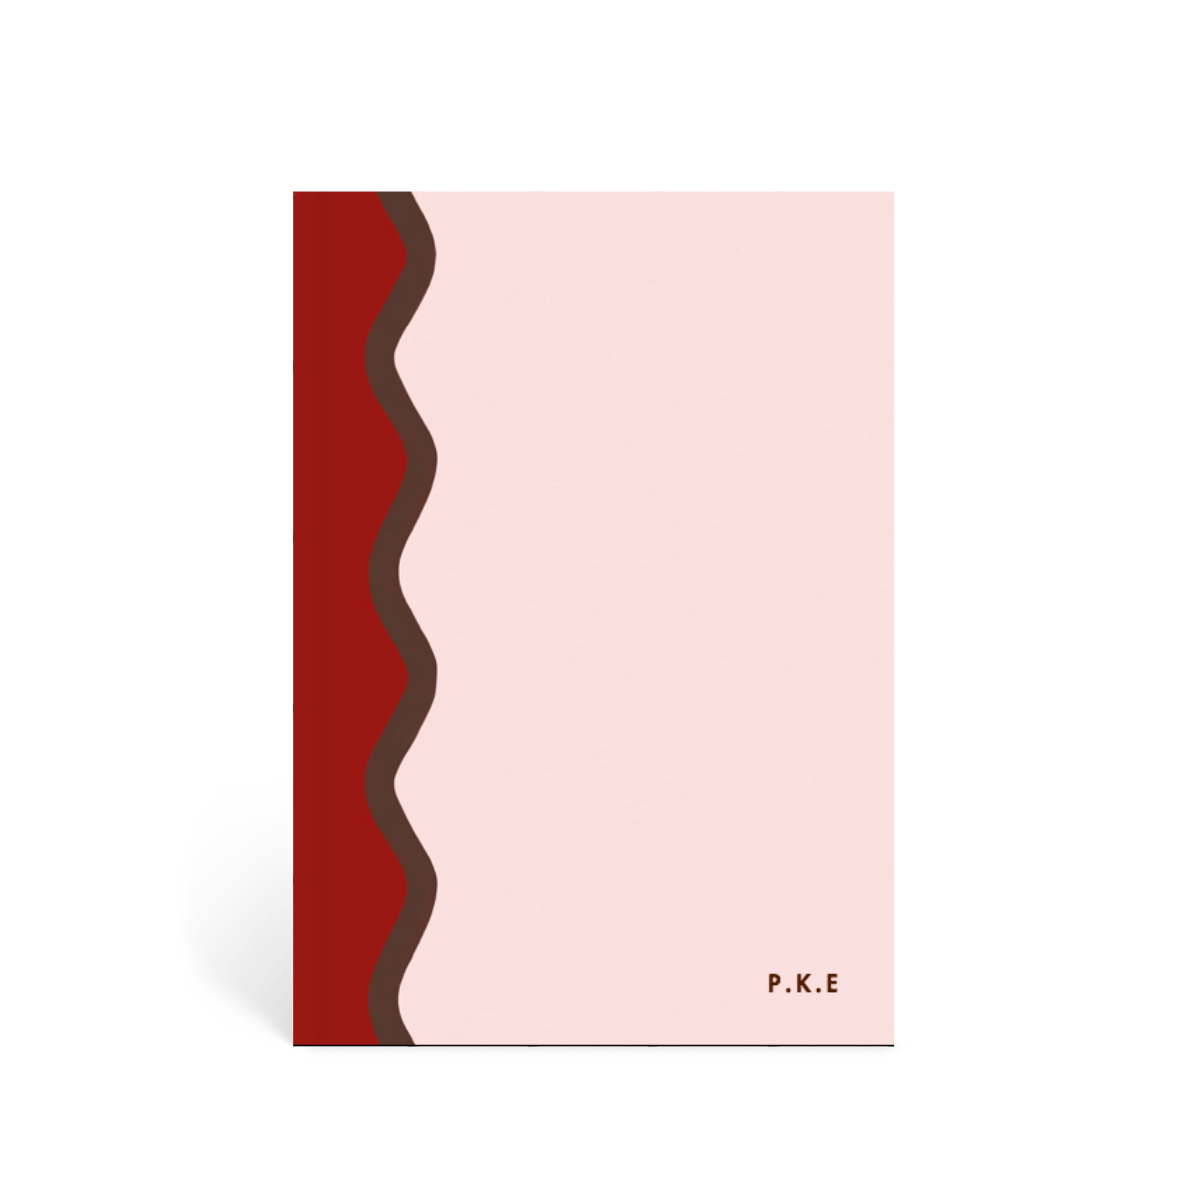 Https%3a%2f%2fwww.papier.com%2fproduct image%2f75559%2f25%2fscallop spine 17716 front 1585307251.png?ixlib=rb 1.1